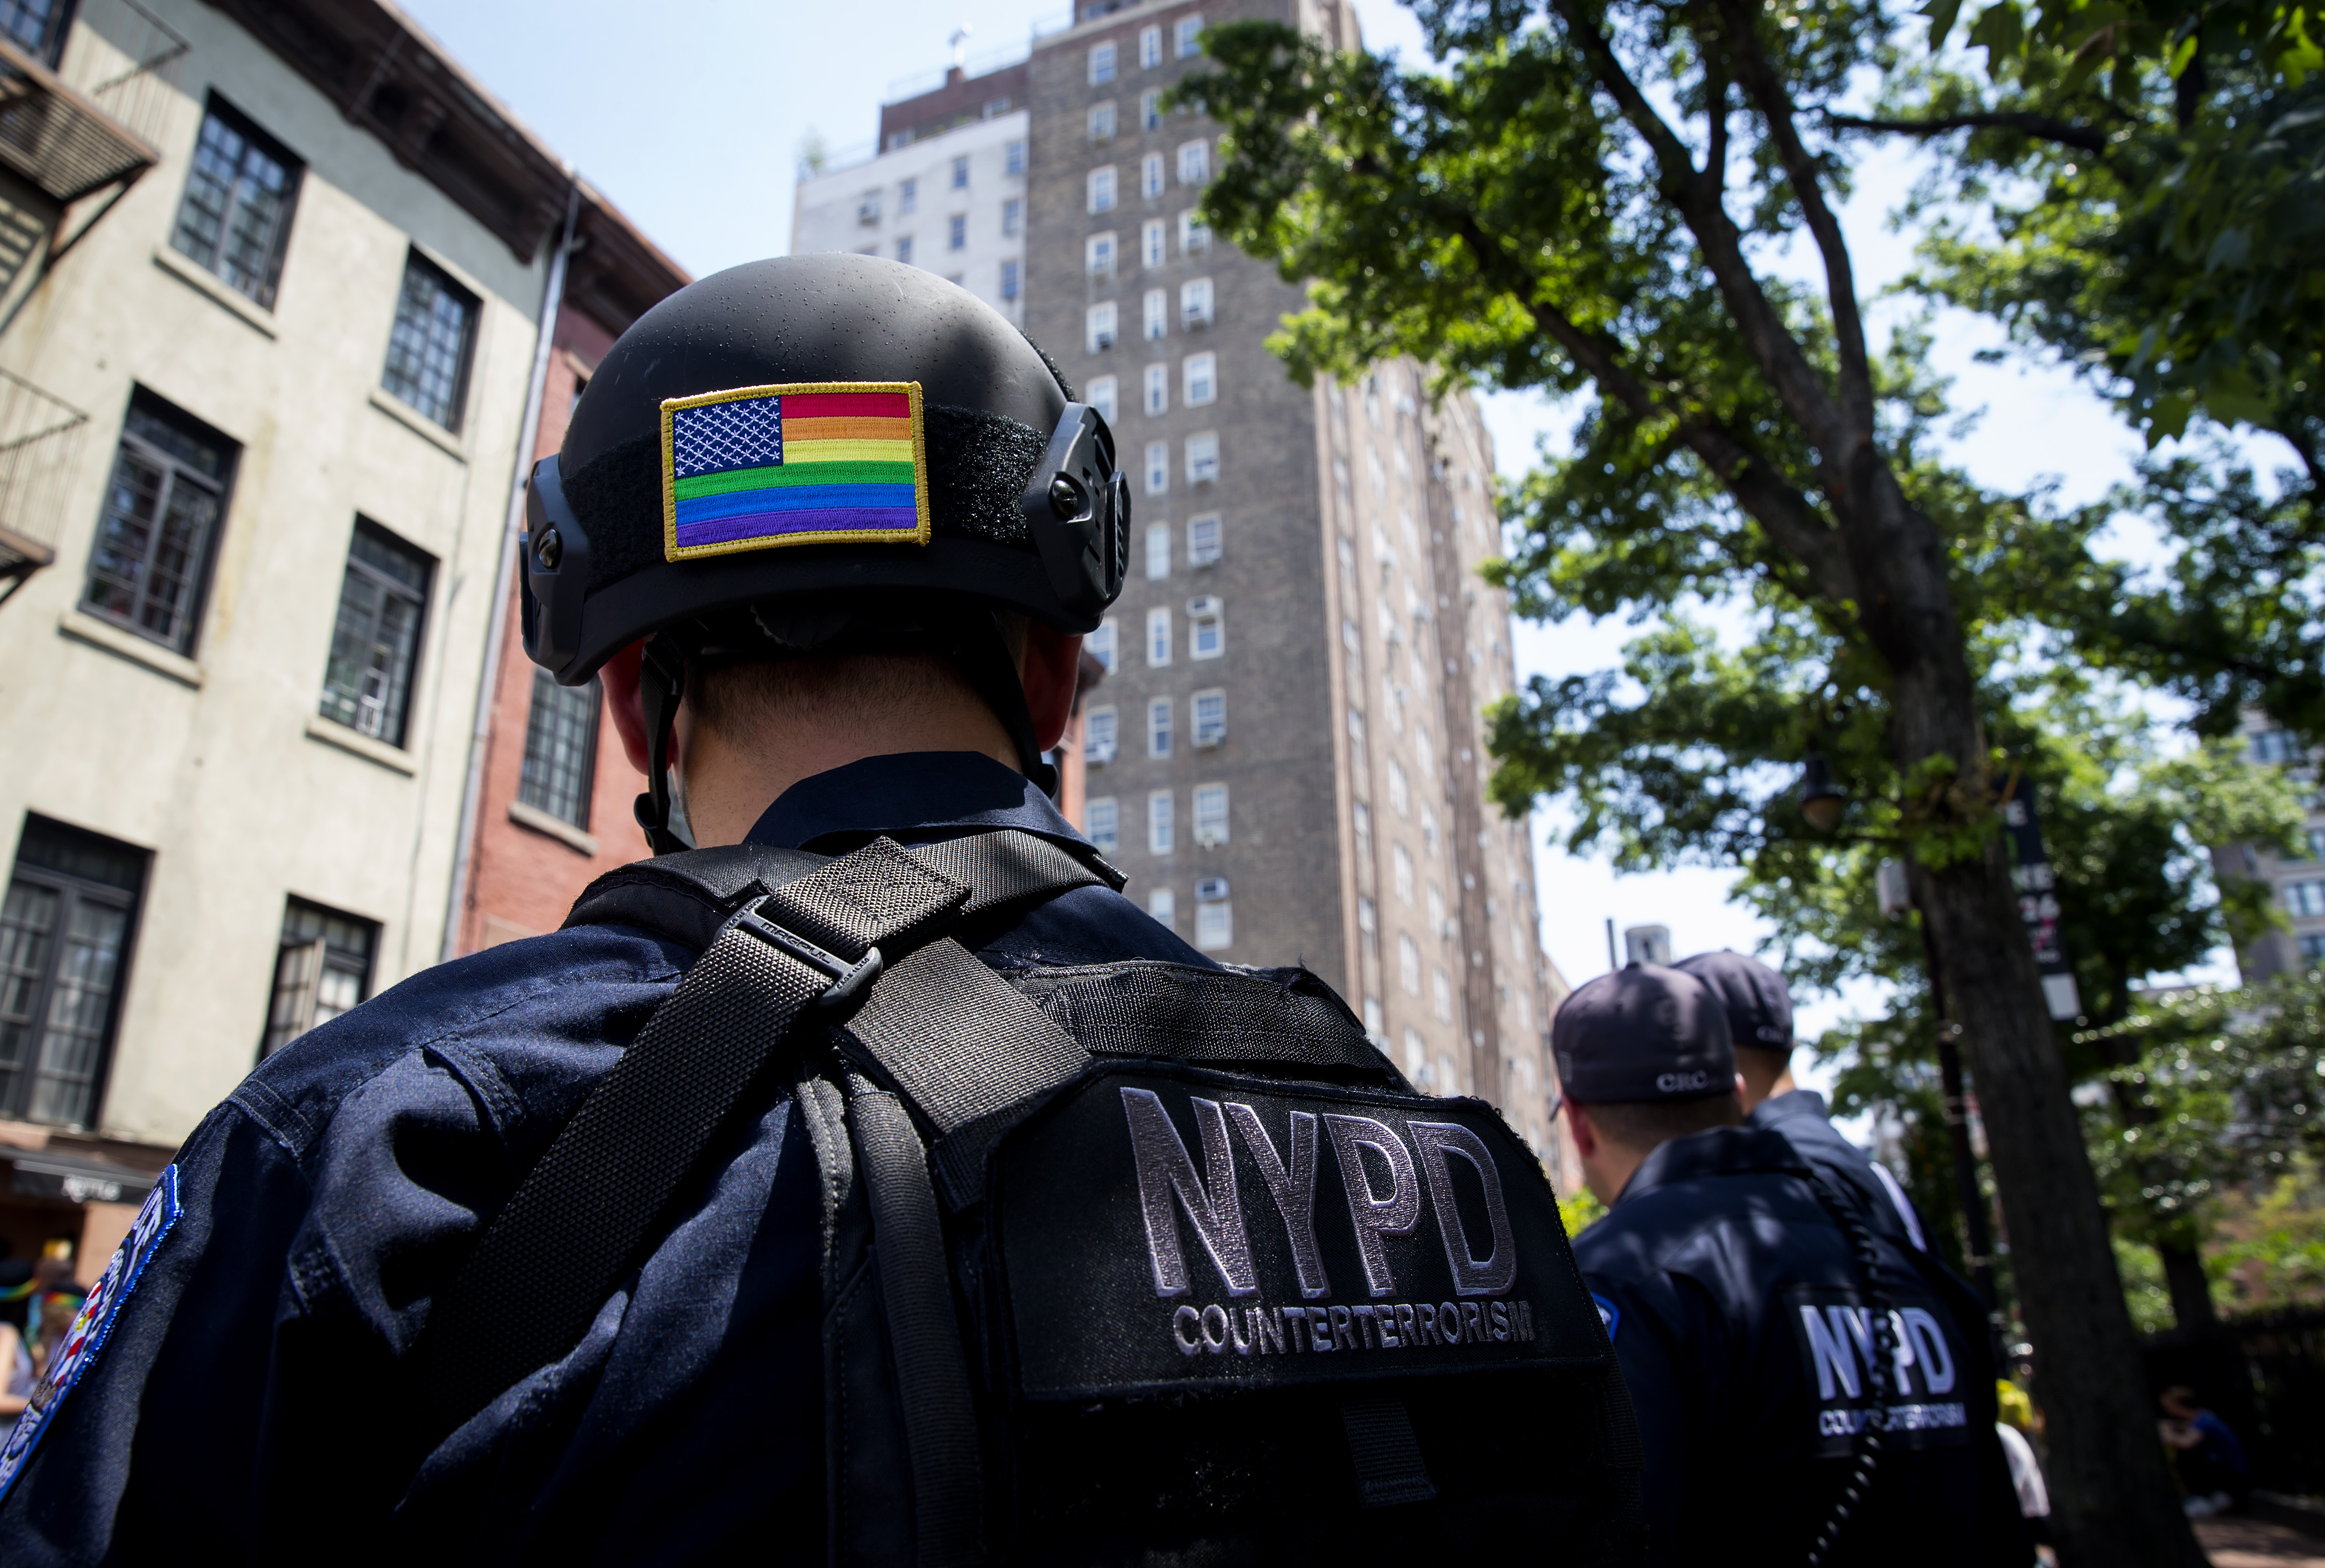 Police used to raid gay bars. Now they march in Pride parades.